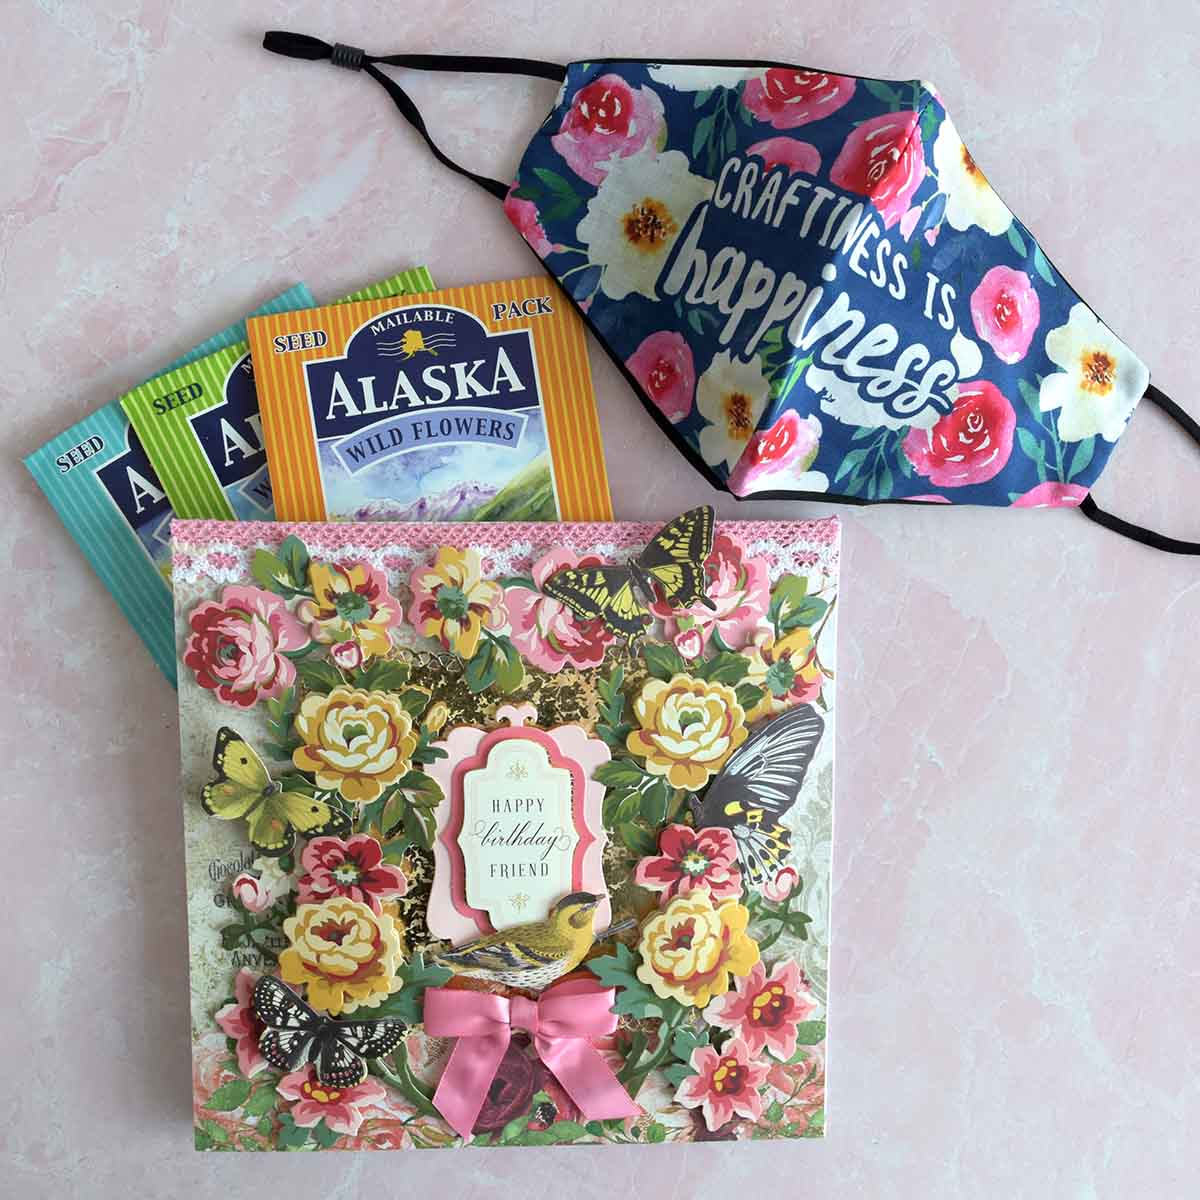 floral card with yellow and pink flowers, butterflies, birds, a pink bow and sentiment that reads Happy Birthday Friend.There are also packets of Alaska wildflowers and a mask that reads Craftiness is Happiness.